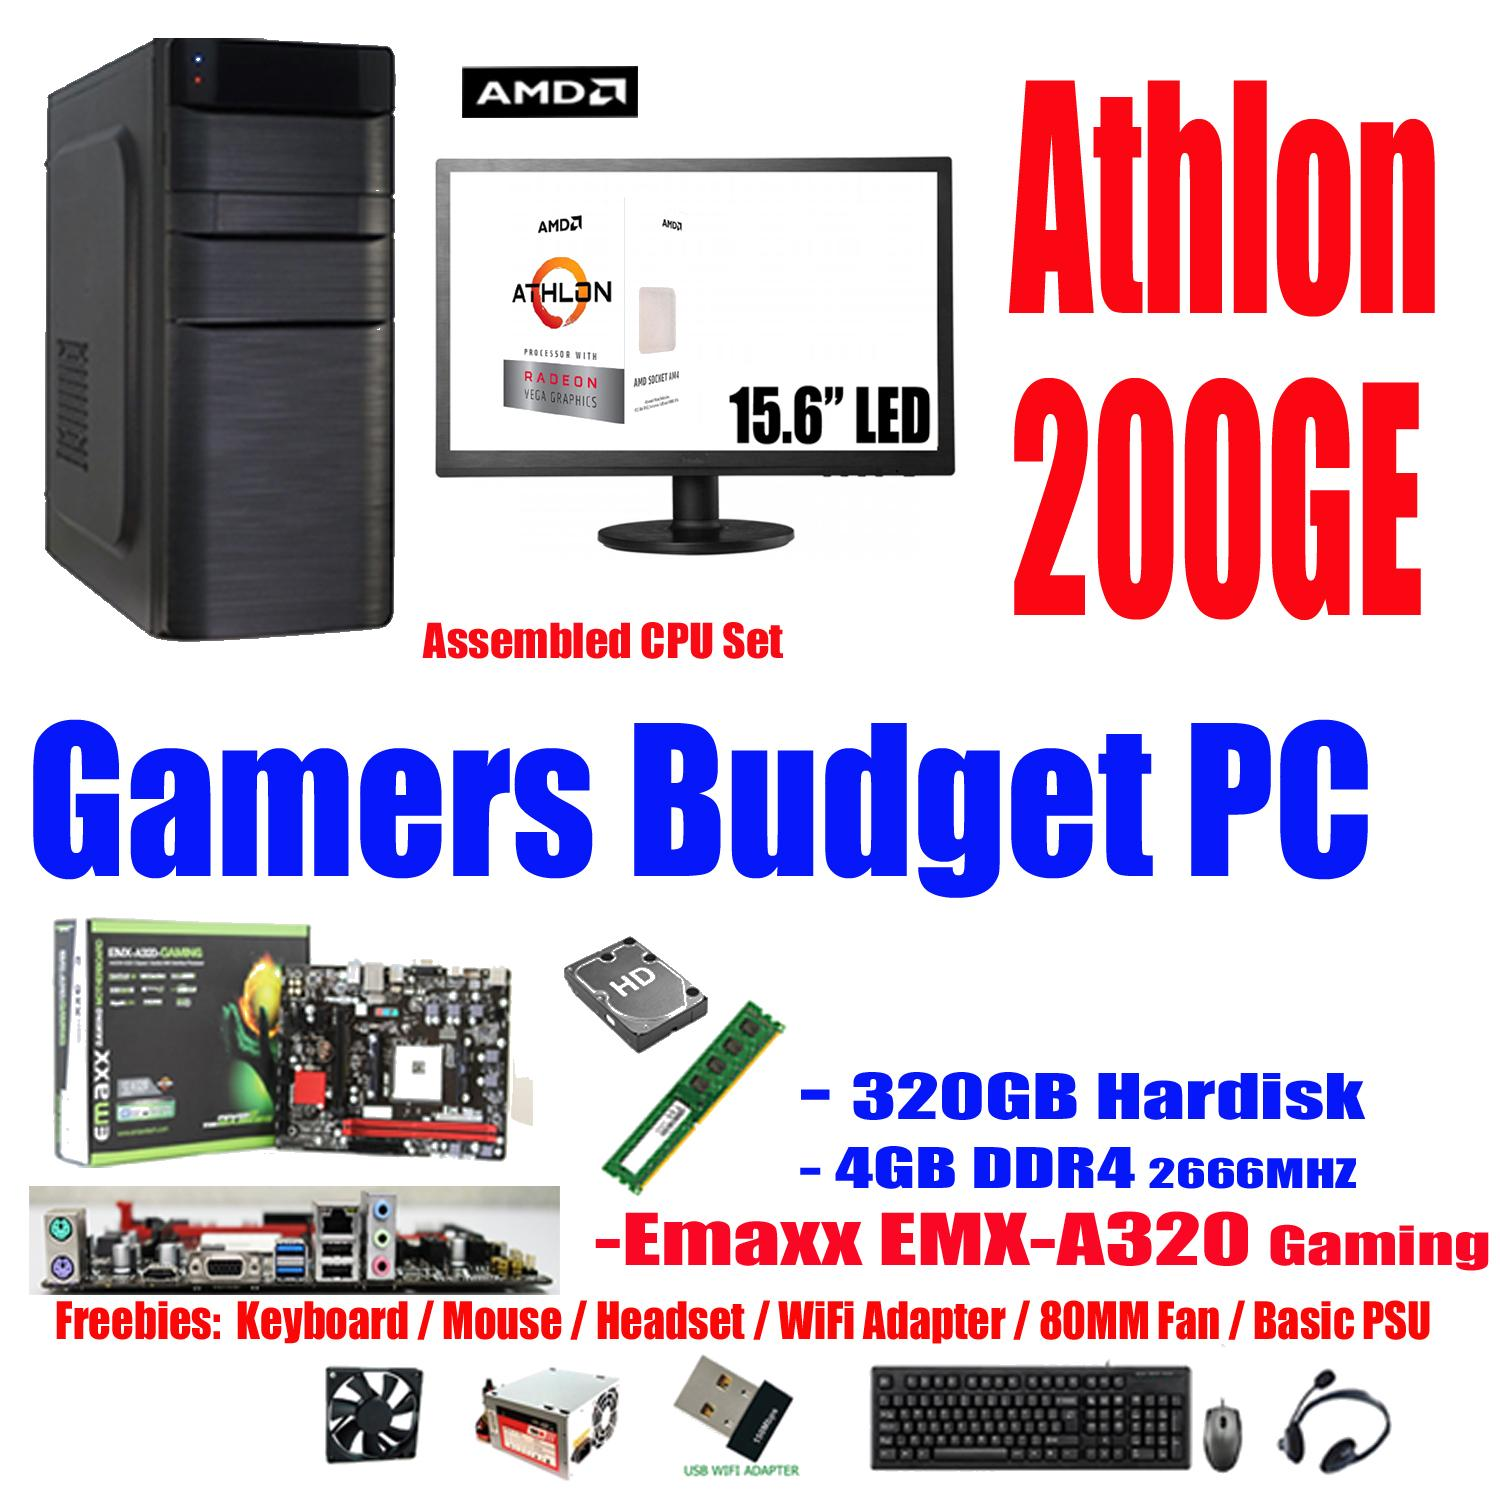 Emaxx PC15.6 320GB - 4GB , AMD Athlon 200GE 2-Core, 4-Thread, 3.2GHz 35W. (Alternative to: Intel Core i3-8100 i3-7100 Pentium G4560 G4600 G5400 Celeron G4930 AMD Kaveri a8-7650k a6-7400k richland a4-6300 Bristol Ridge A8-9600 A10-9700 A6-9500 )